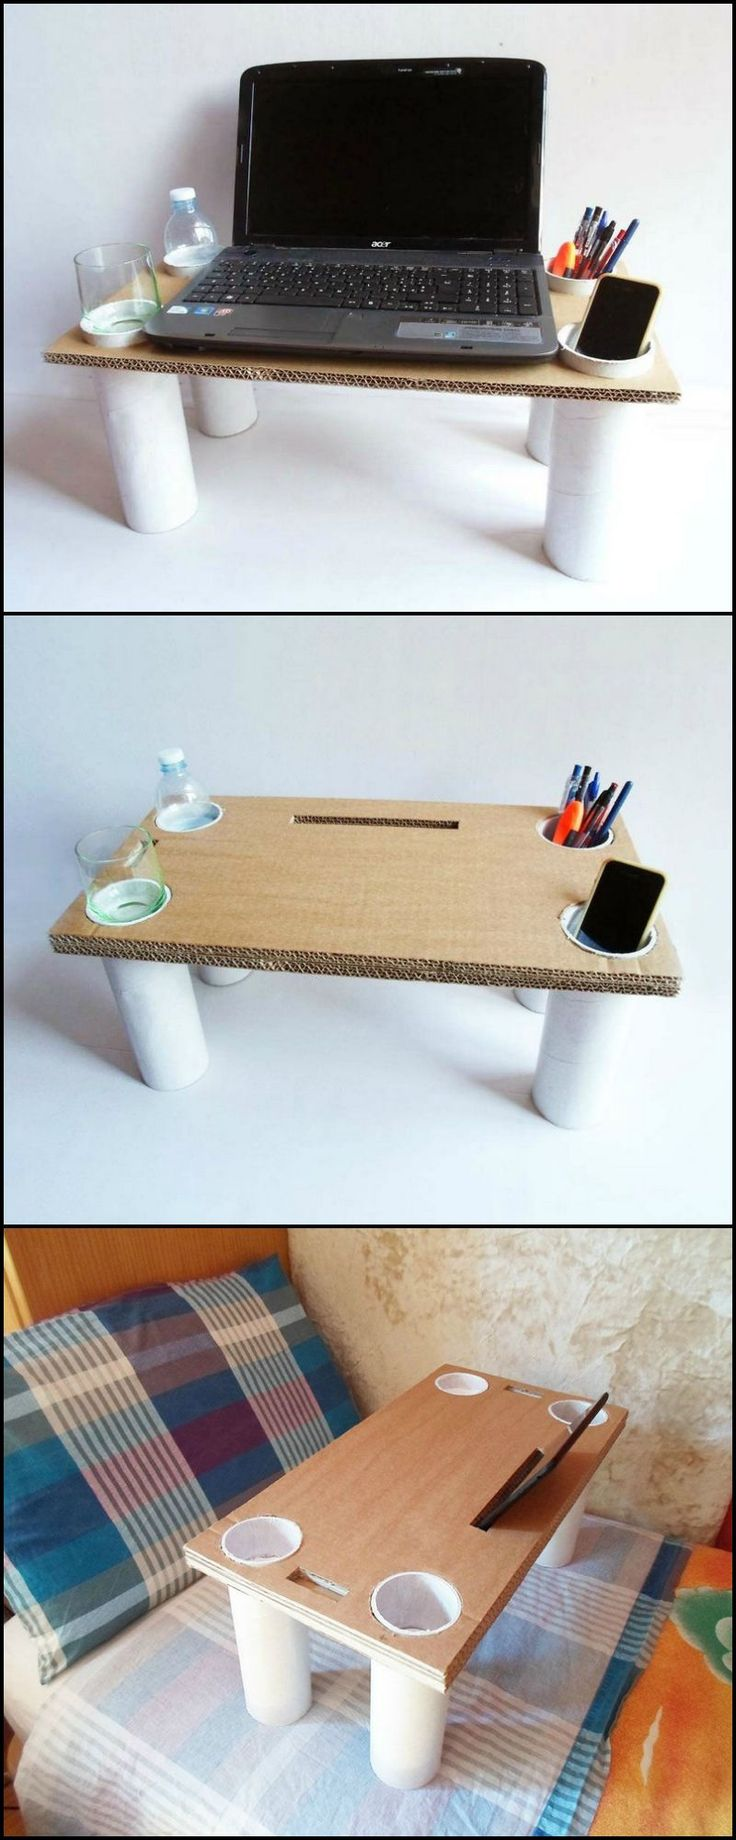 Laptop bed table tray - Multi Purpose Bed Table Http Craft Ideas2live4 Com 2015